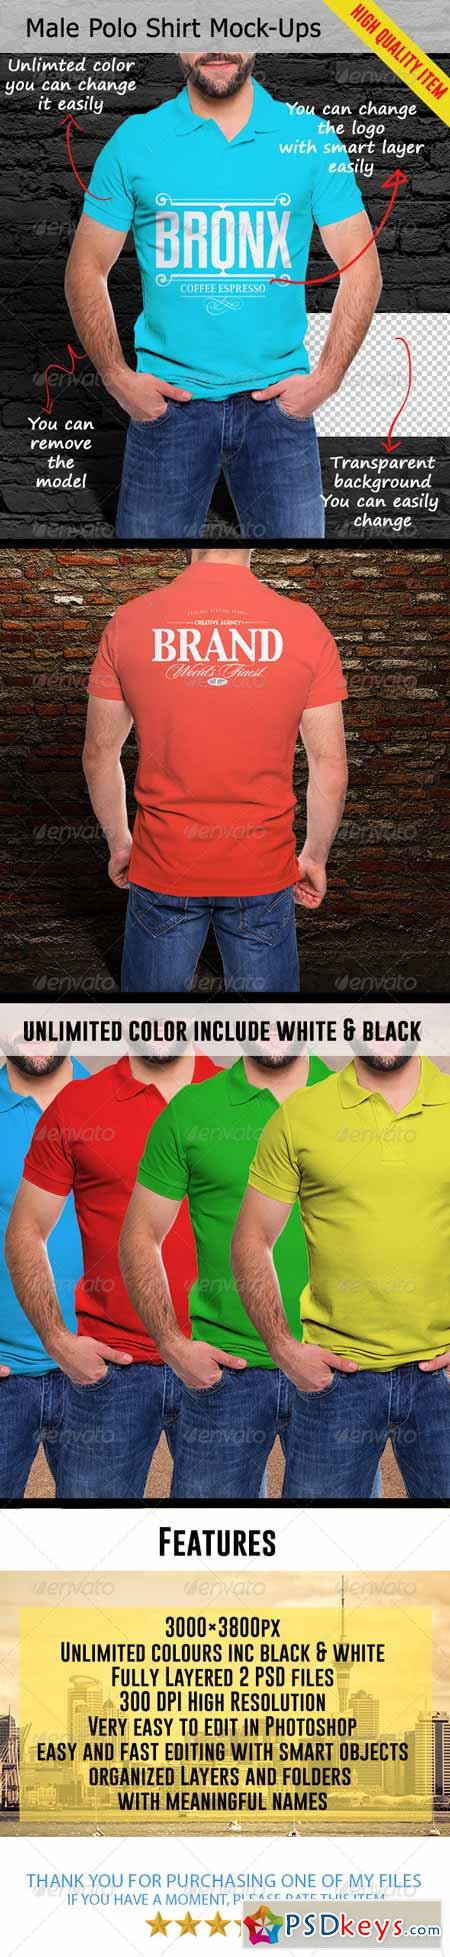 Male Polo Shirt Mock-Ups 7750662